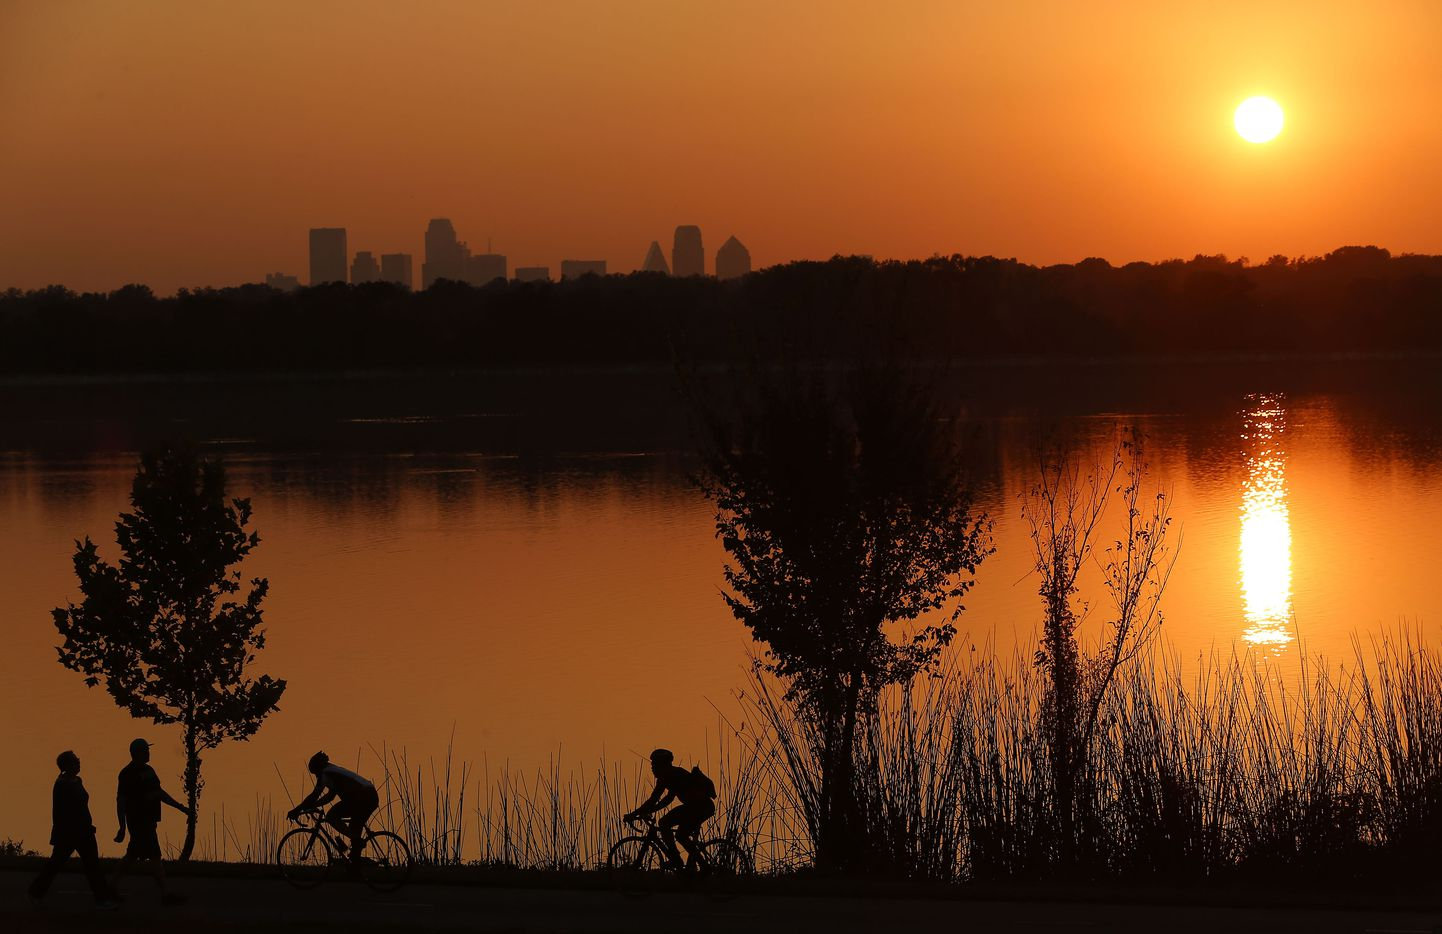 People and cyclists on the path at White Rock Lake as the sun sets Nov. 3, 2017. The photo was shot from the garden near the Test Pavilion at Dallas Arboretum. The downtown Dallas skyline can be seen in the distance.